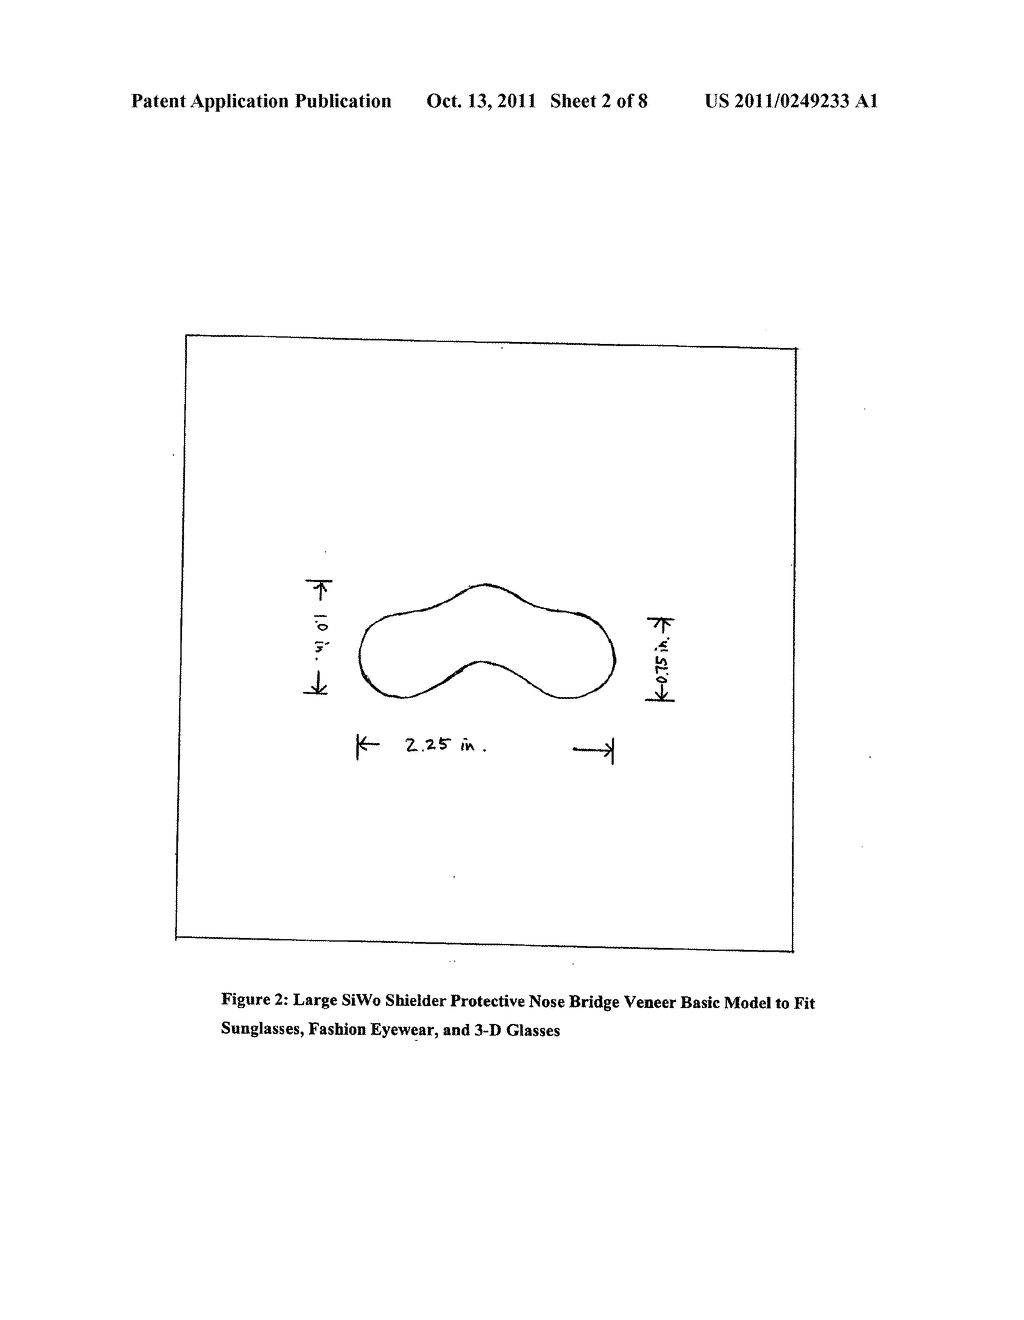 Leather/suede nose bridge vaneer (known as SiWo shielder) for preventing     indentions, inflammation, scars, marks and discoloration caused by the     stem of eyeglasses, sunglasses, fashion eye wears, and 3-D glasses - diagram, schematic, and image 03